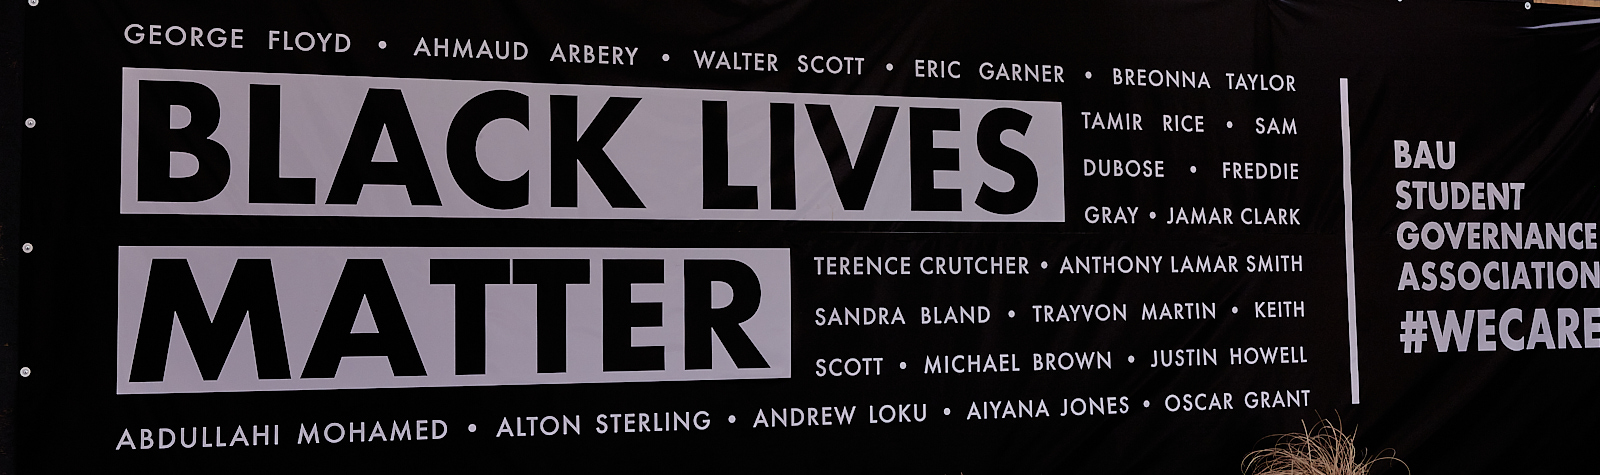 What is BLACK LIVES MATTER really about?